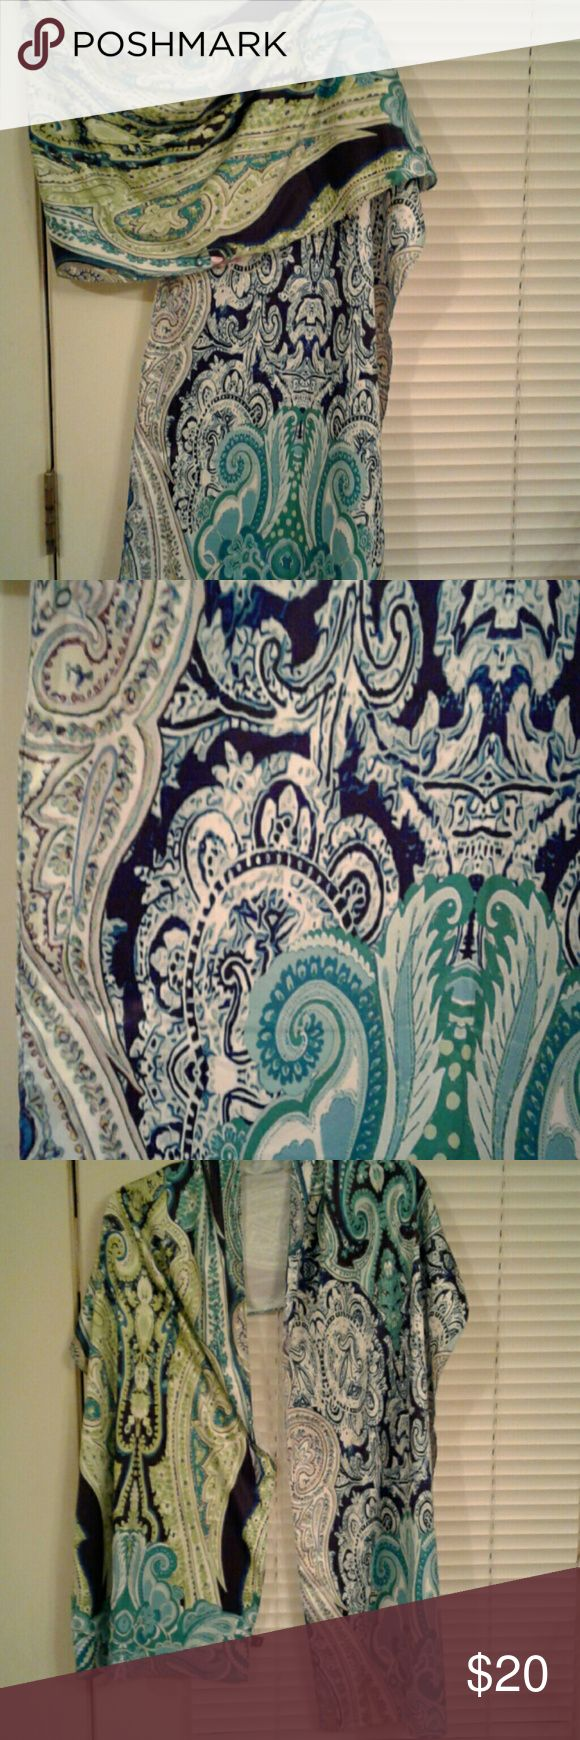 NWOT Echo Scarf-FREE WITH  $40 OR > PURCHASE Gorgeous Echo multicolored paisley scarf.  It is beautiful!  Mostly greens and blues with some lavender.  Would make a great gift for yourself or a friend. ☃  One scarf free with a $40 or more purchase.  ☺ Echo Accessories Scarves & Wraps